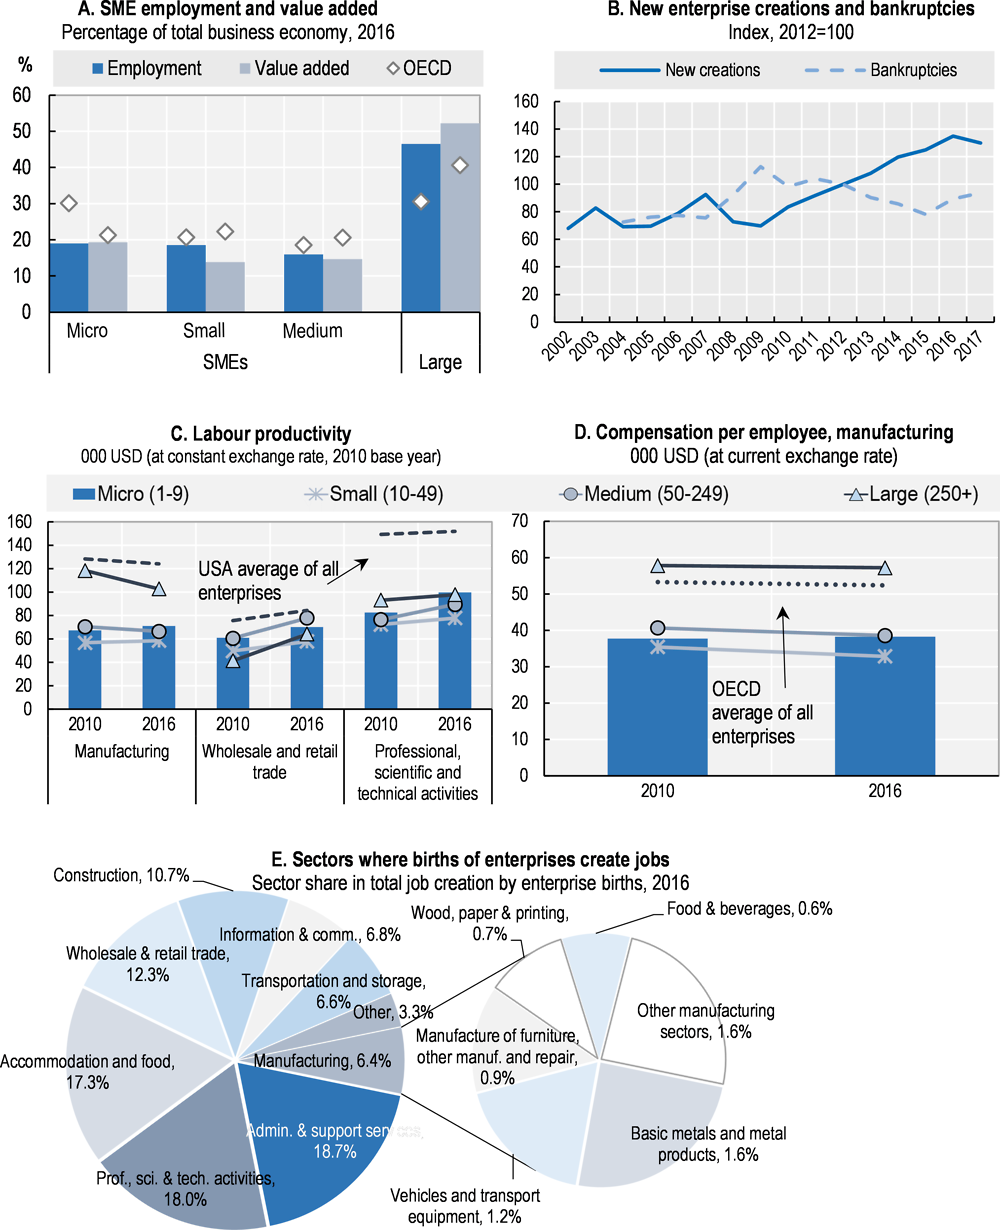 Figure 43.1. Structure and performance of the SME sector in the United Kingdom